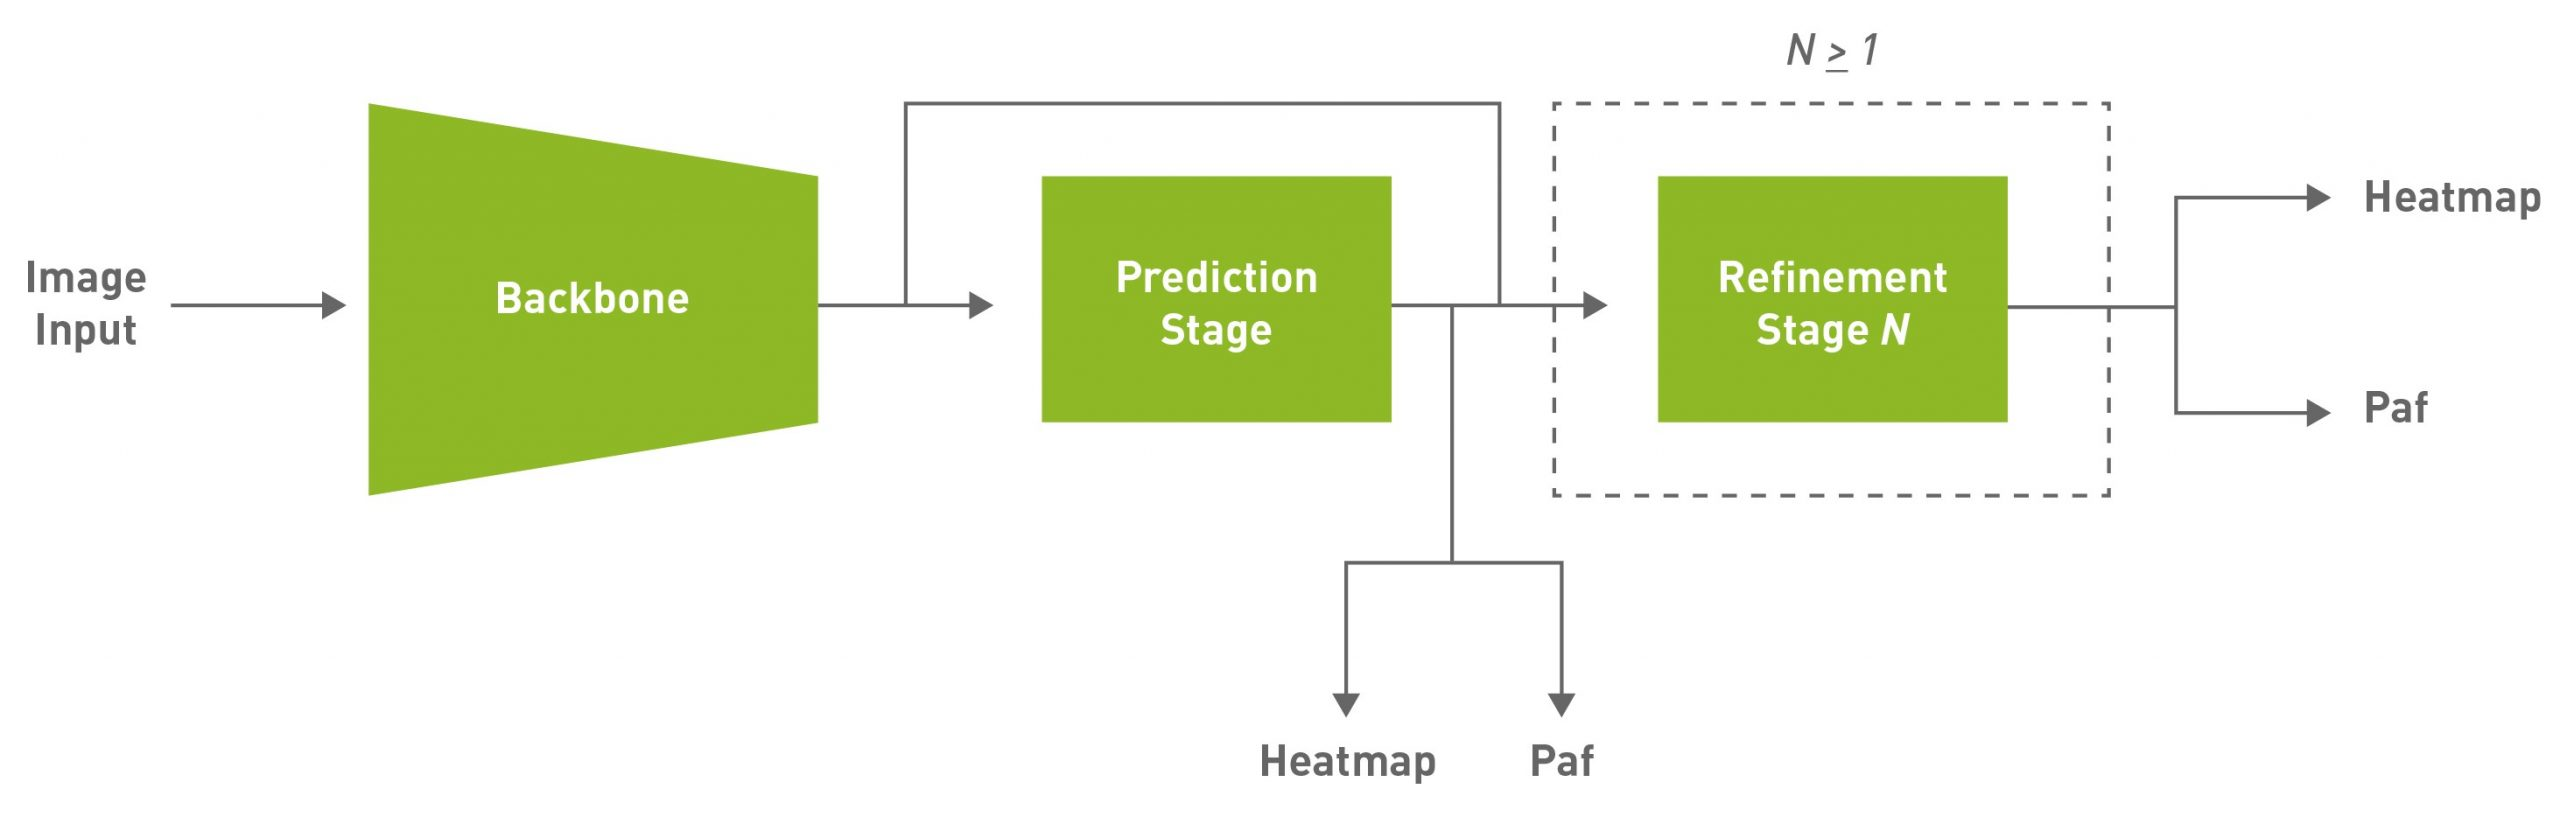 The figure shows the default model used in this post, which is a fully convolutional model and consists of a backbone network, an initial prediction stage which does a pixel-wise prediction of confidence maps (heatmap) and part affinity fields (paf) followed by multistage refinement (0 to N stages) on the initial predictions.